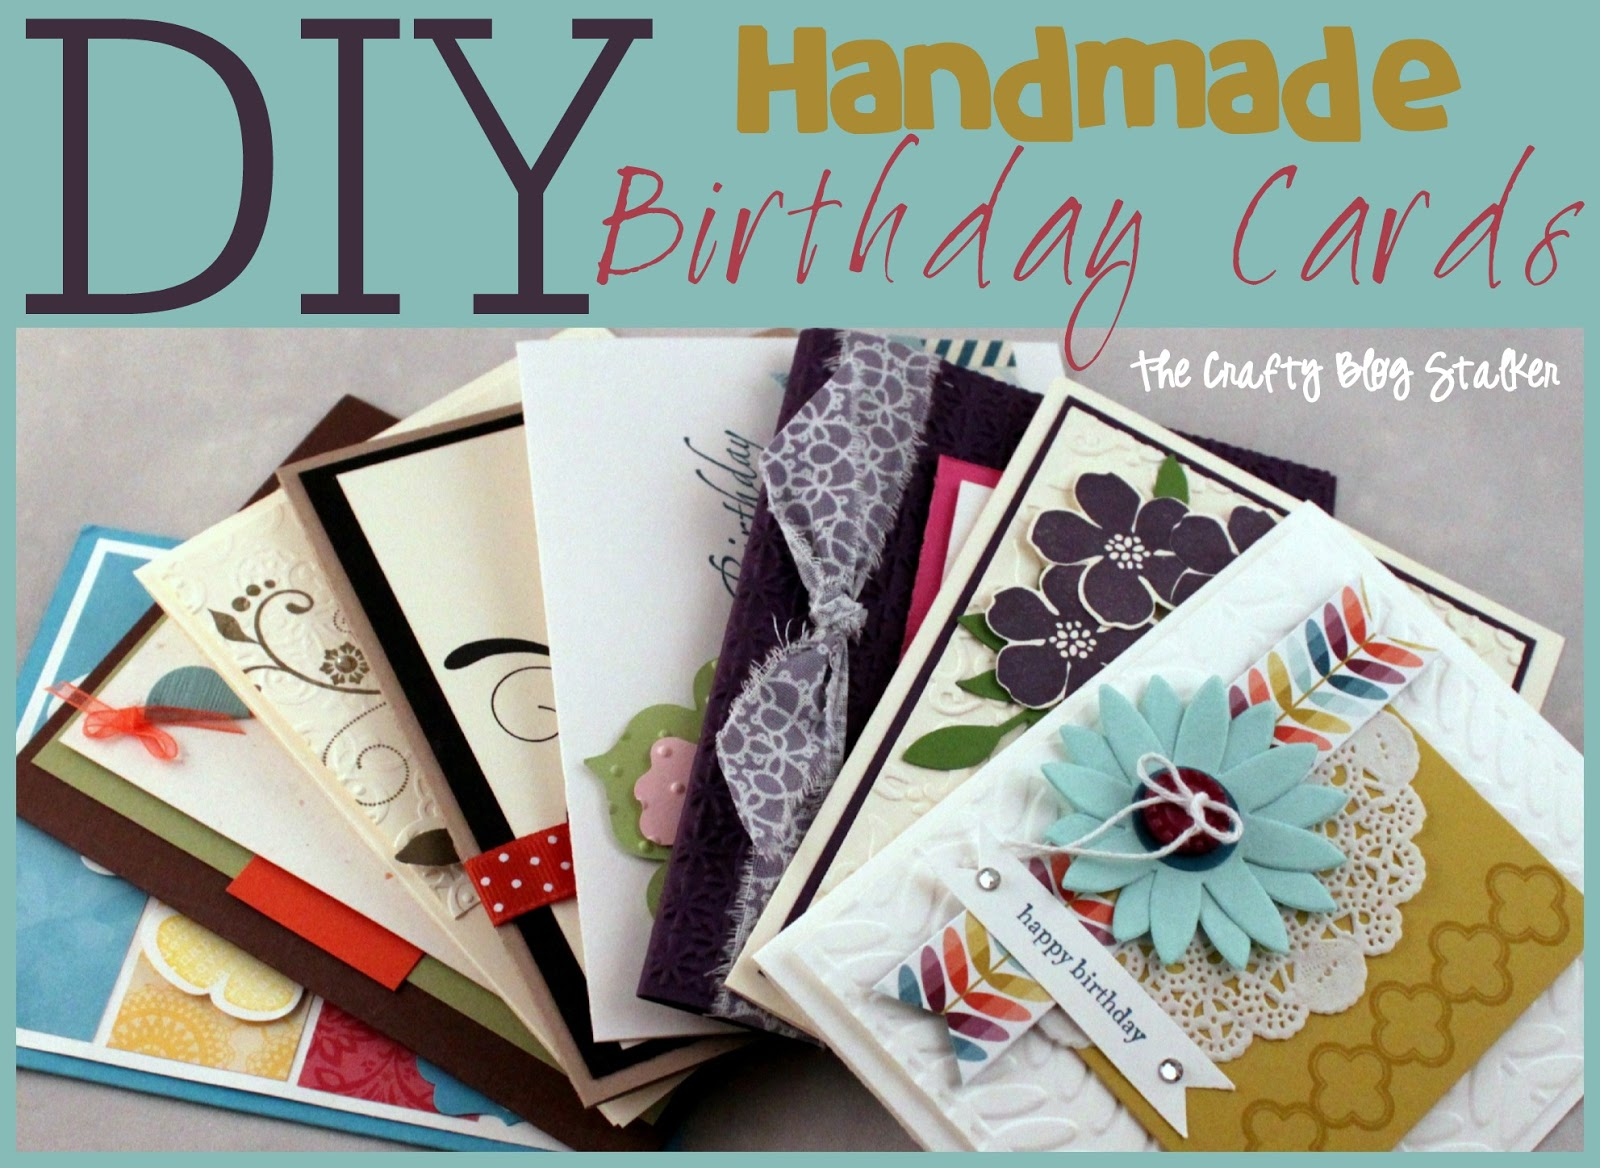 Making Birthday Card Ideas Handmade Birthday Card Ideas The Crafty Blog Stalker